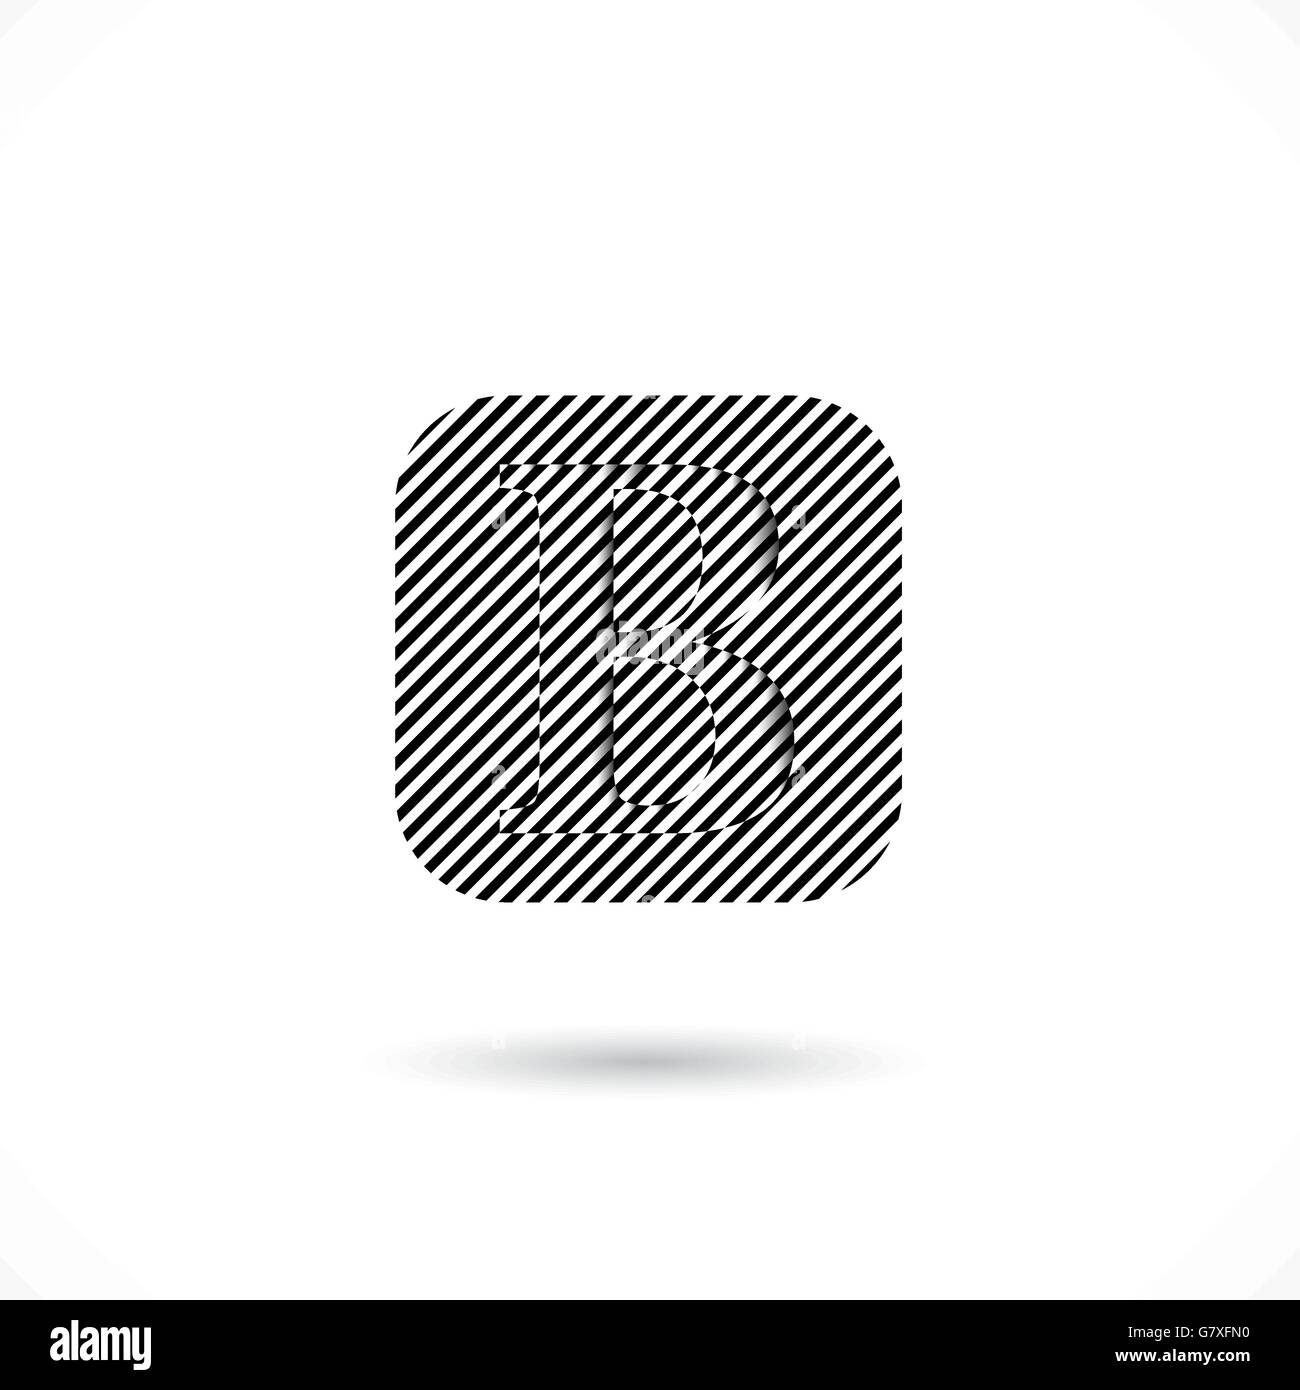 Creative b letter icon abstract logo design vector stock vector creative b letter icon abstract logo design vector templateb alphabet symbol pronofoot35fo Image collections